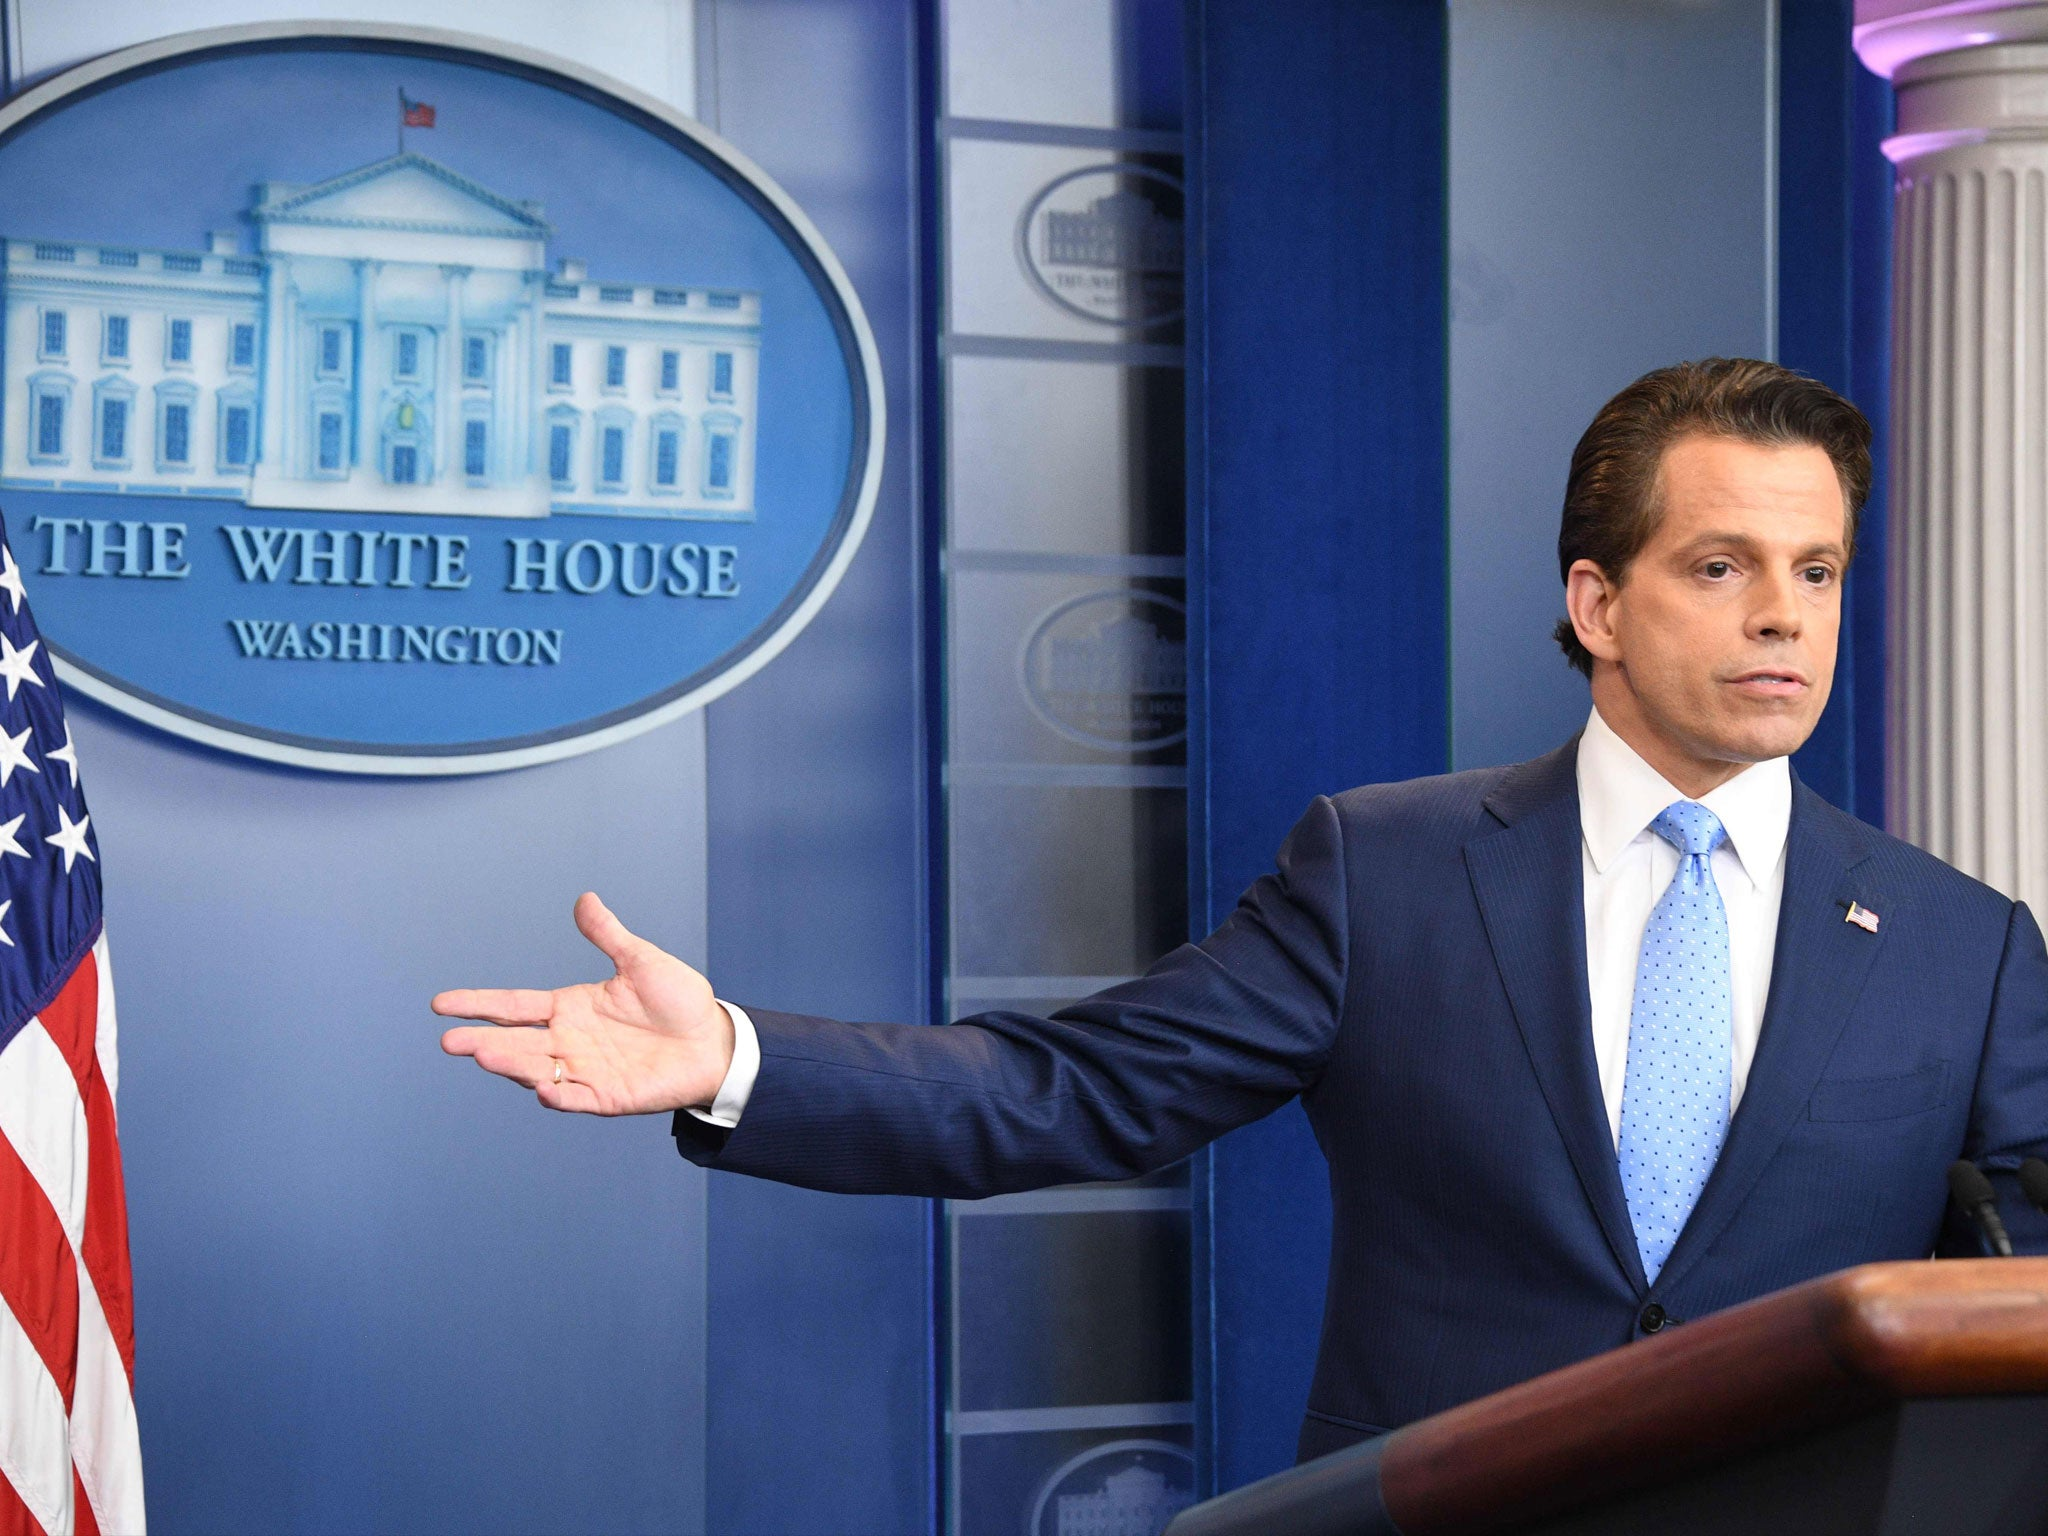 'Trump would literally like to wall off America from the rest of the world': Former aide Scaramucci warns president will stop at nothing to be re-elected thumbnail